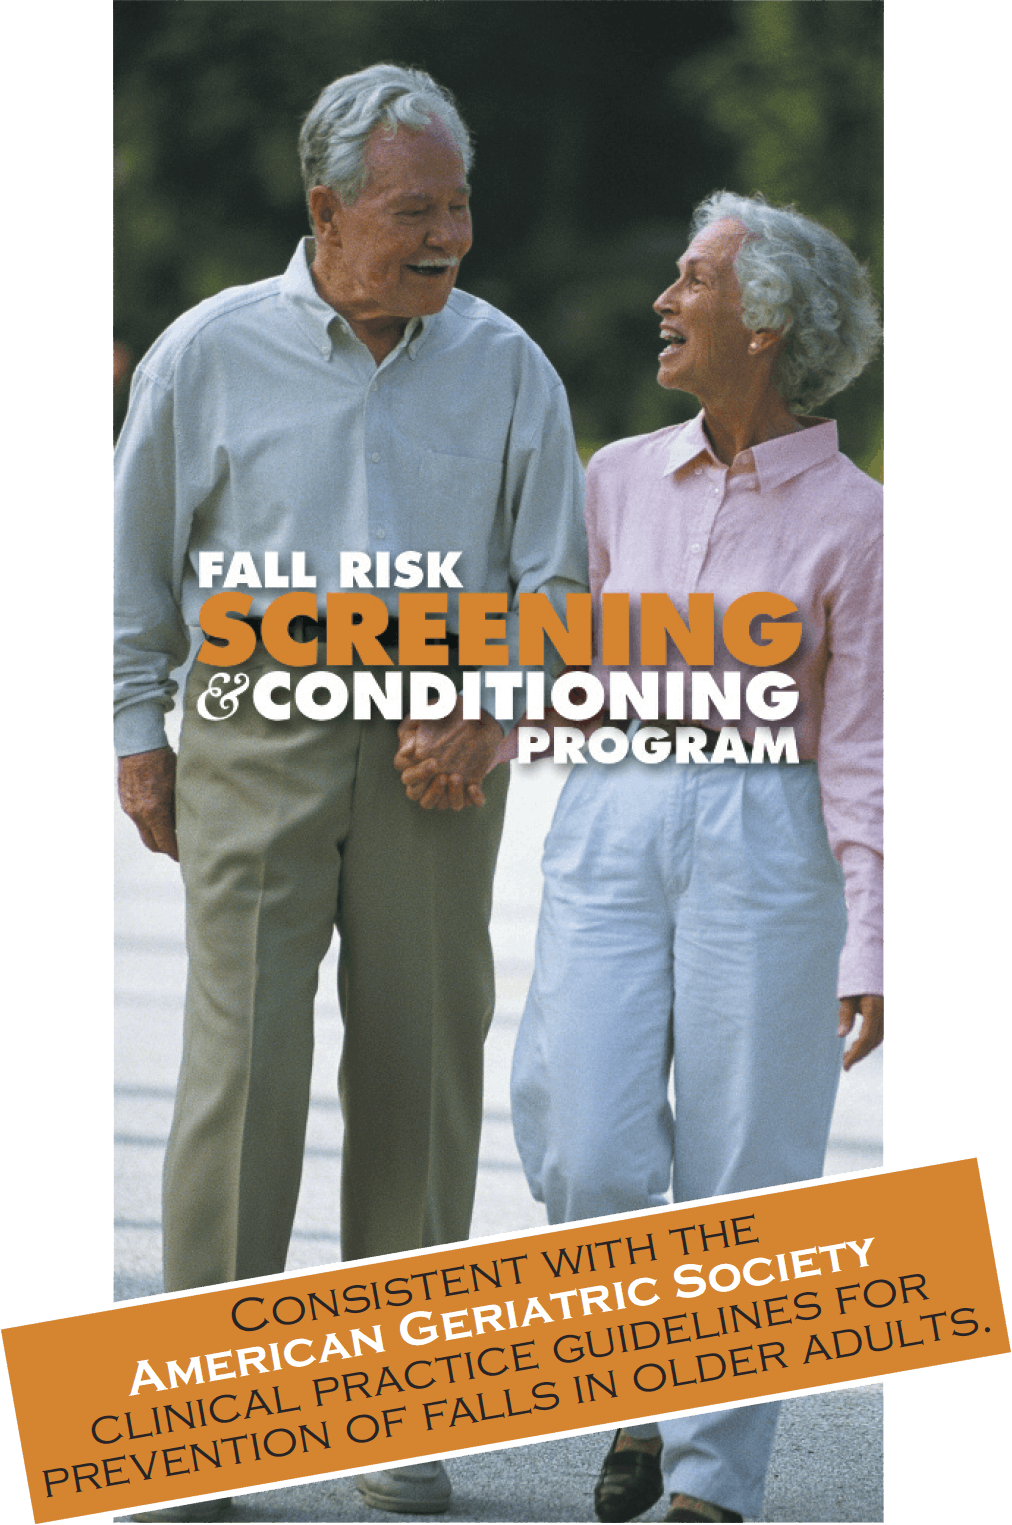 Fall Risk & Screening Program